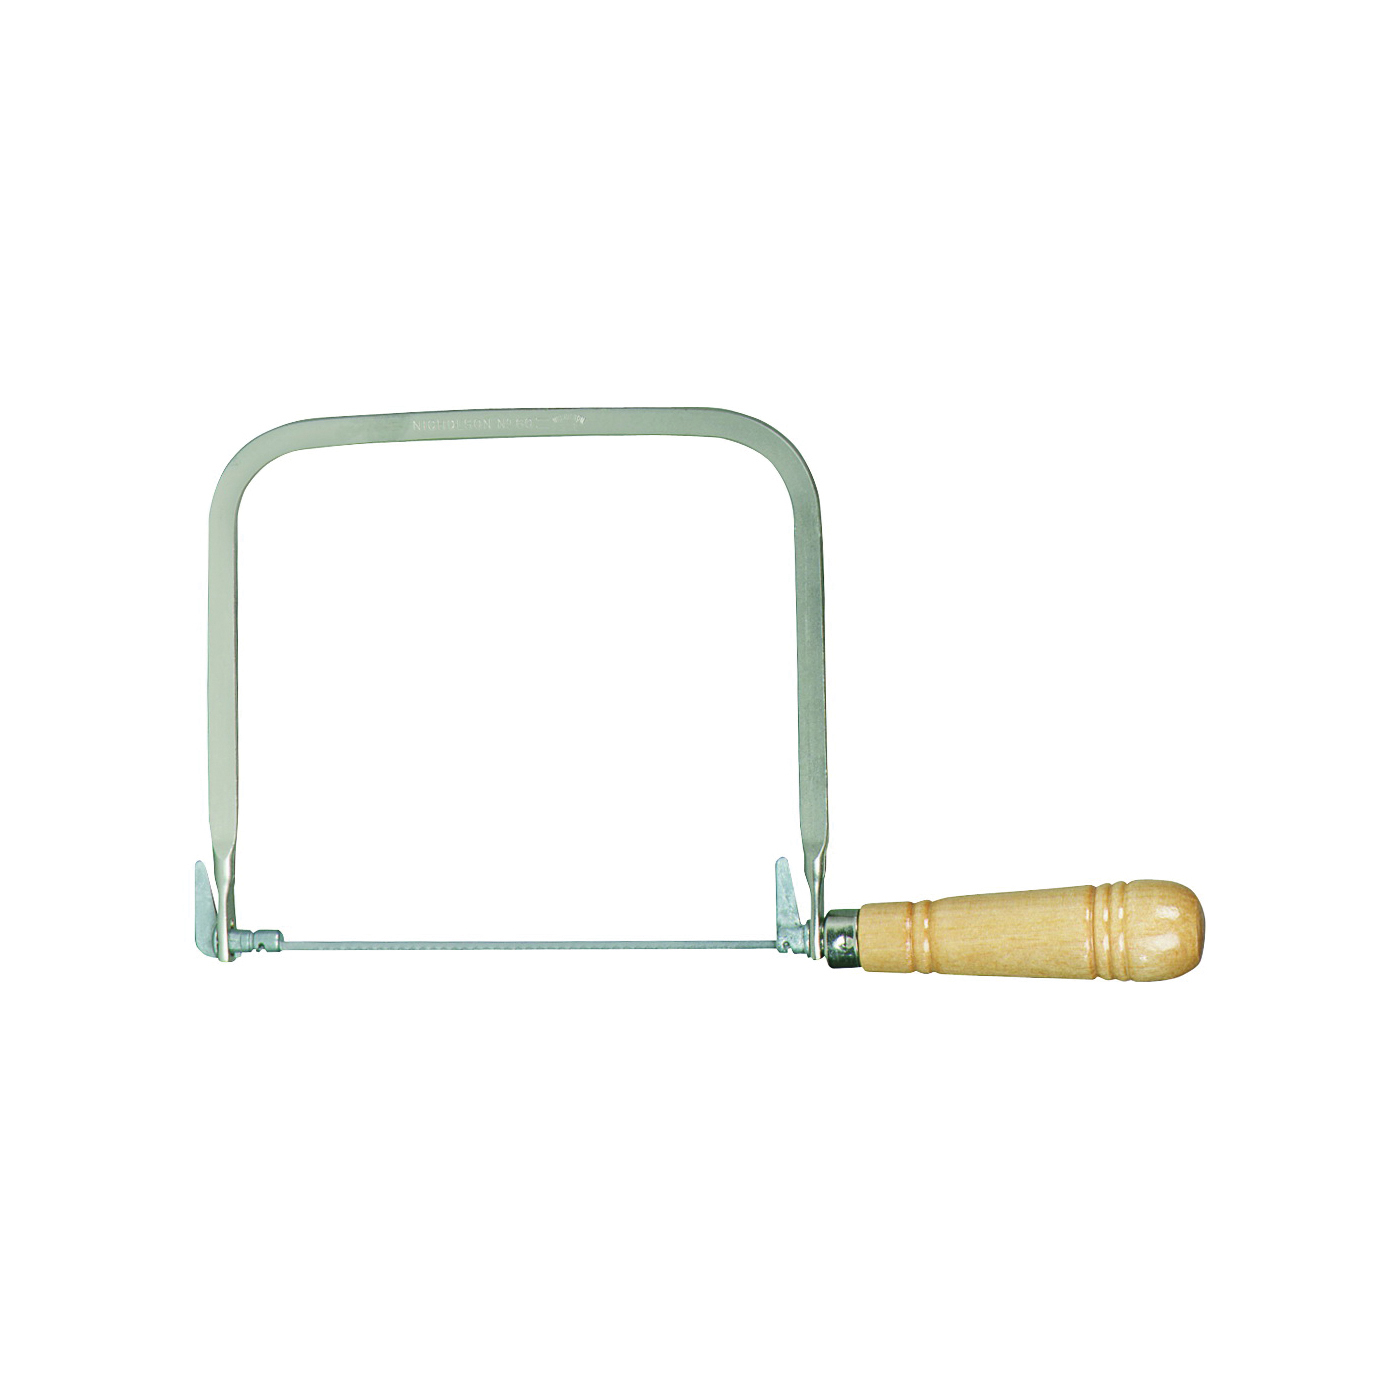 Picture of Crescent Nicholson 80176 Coping Saw, 6-1/2 in L Blade, 15 TPI, Steel Blade, Straight Handle, Wood Handle